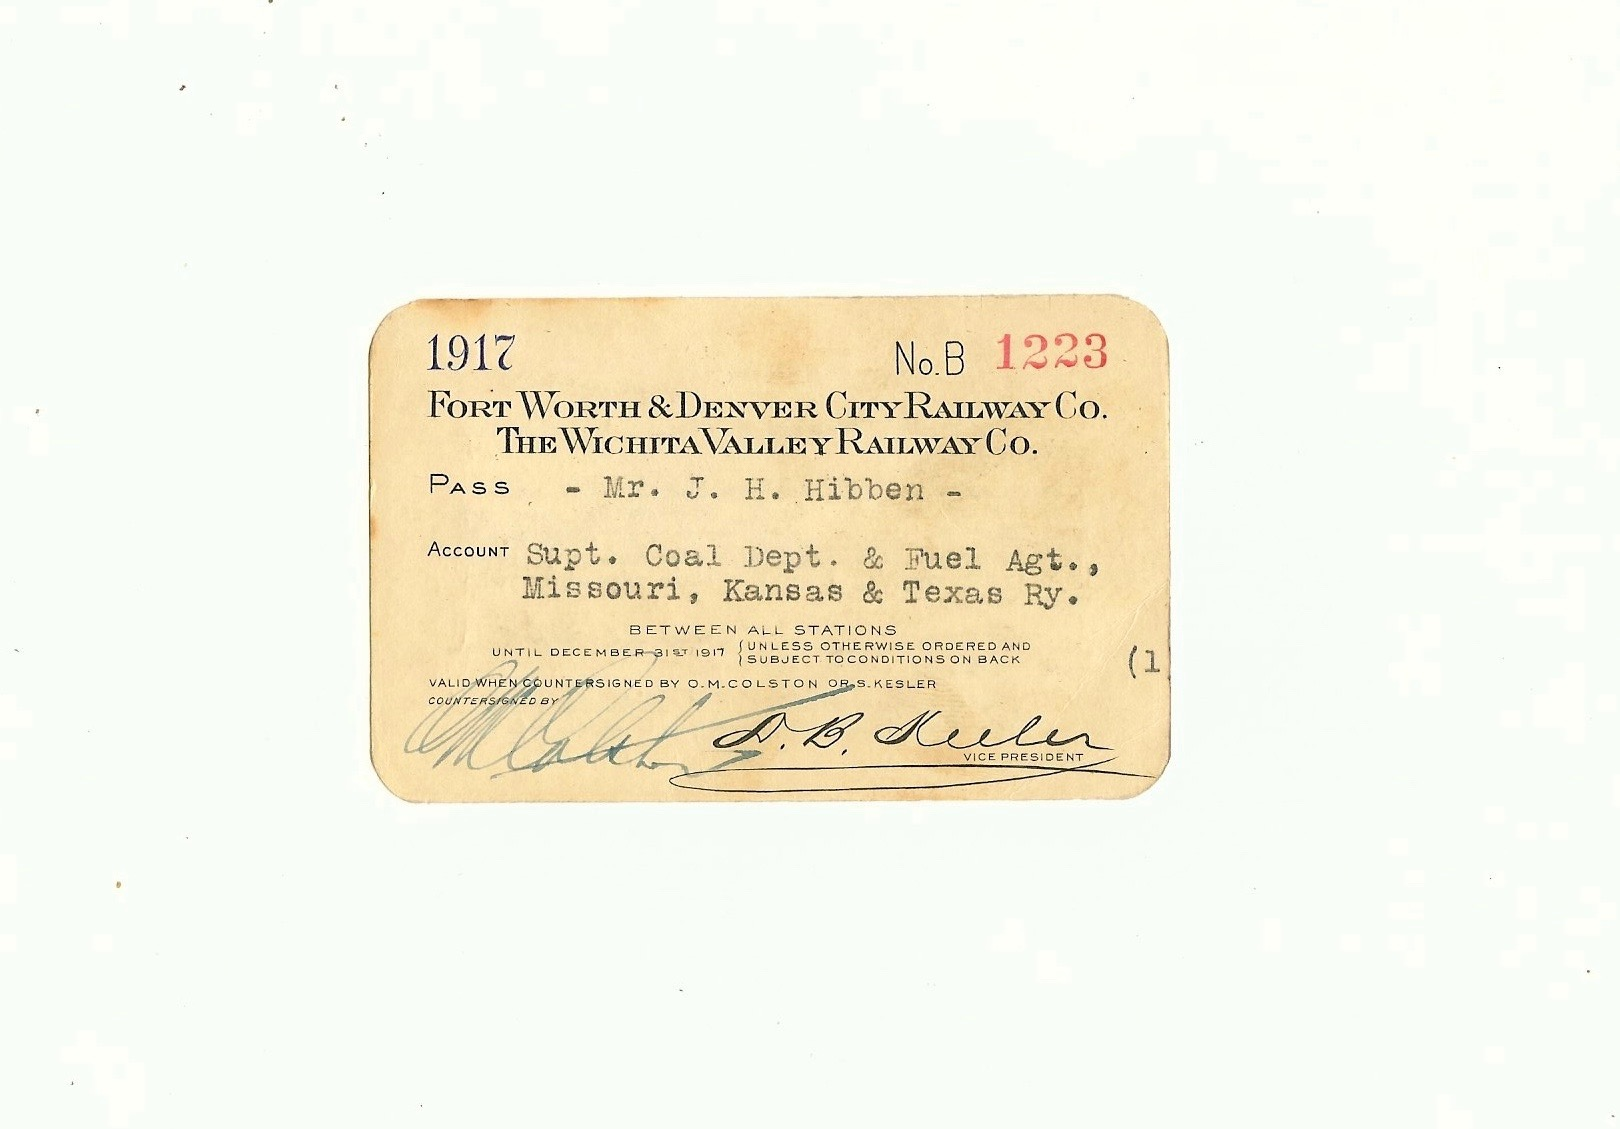 Fort Worth & Denver City Railway Company Railroad Pass 1917